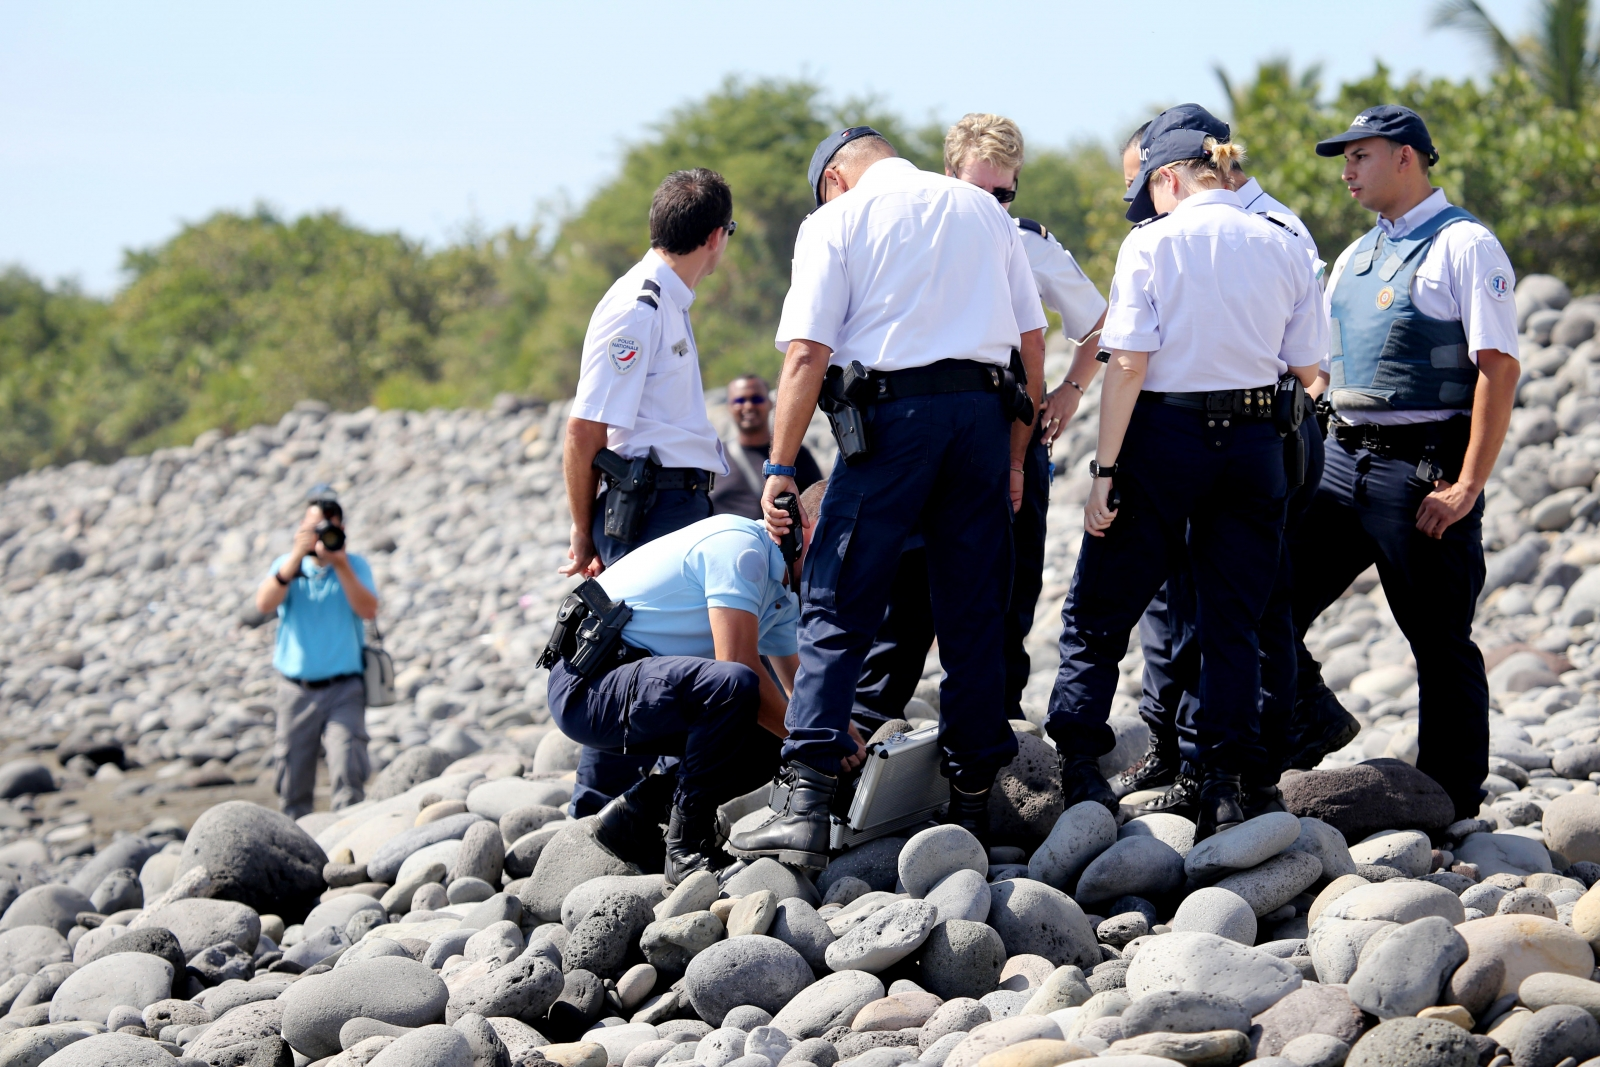 Police search for Flight 370 debris